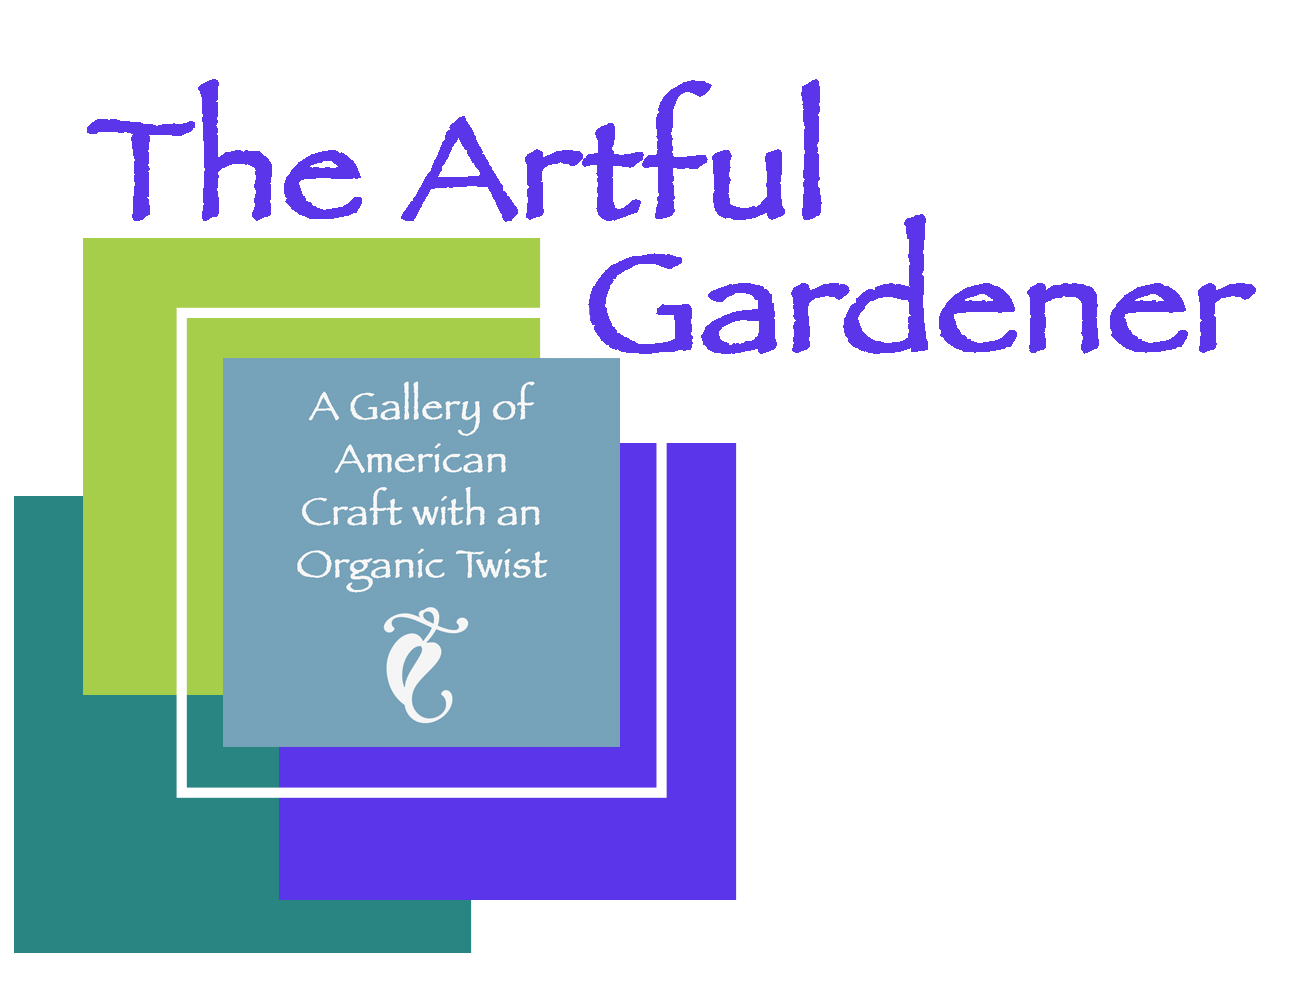 The Artful Gardener